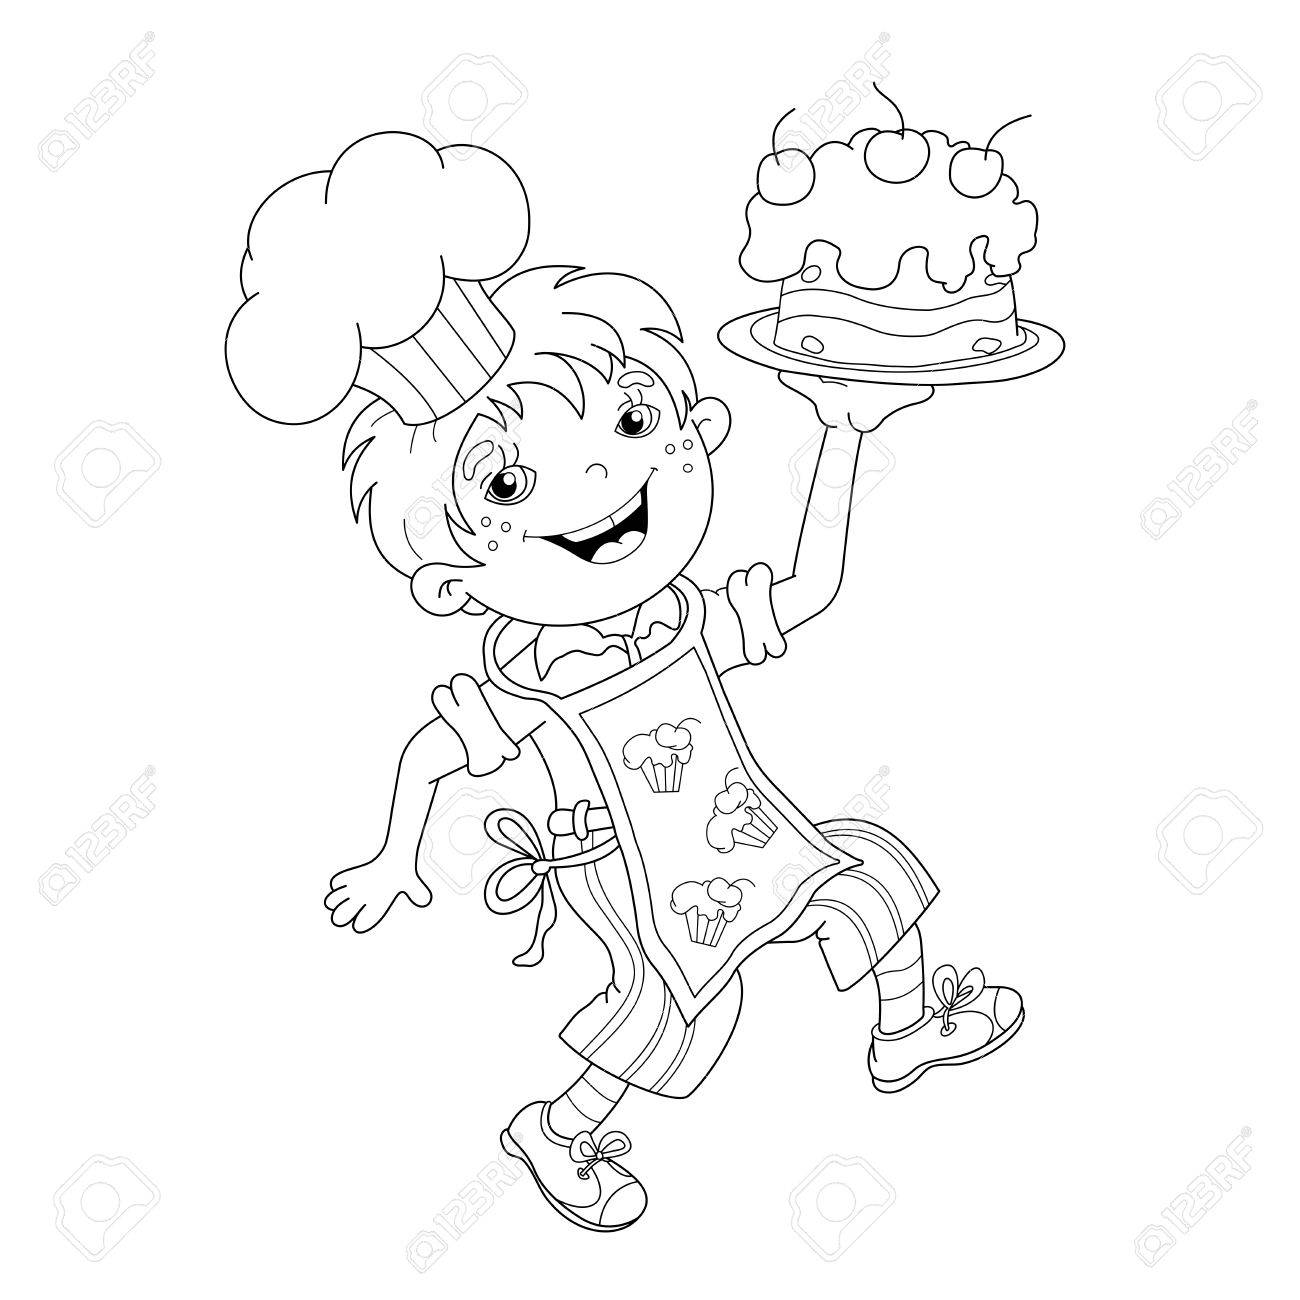 Coloring Page Outline Of Cartoon Boy Chef With Cake. Coloring ...